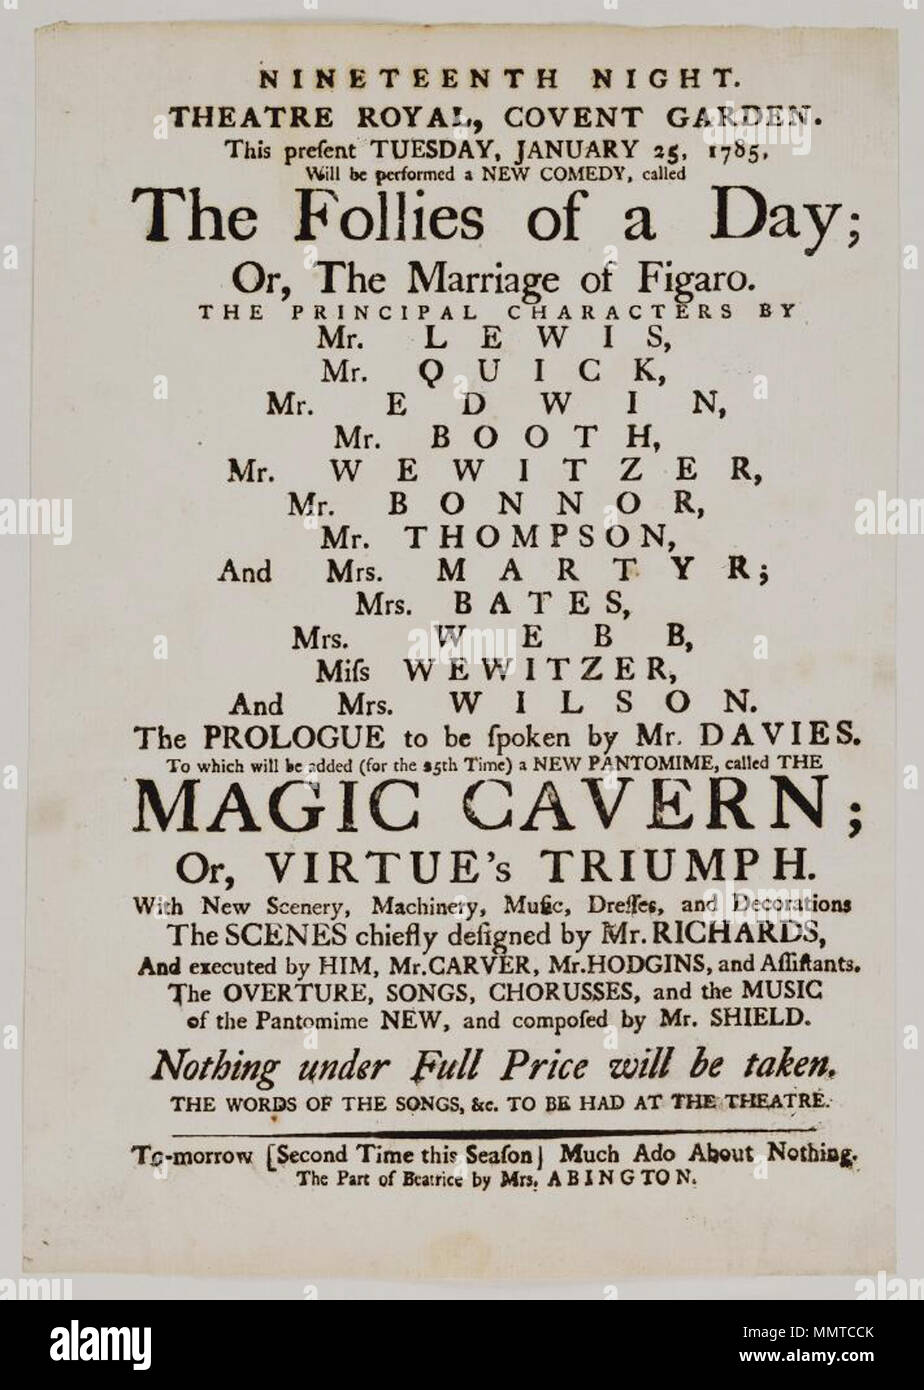 Playbill of Covent Garden, Tuesday, January 25, 1785, announcing The